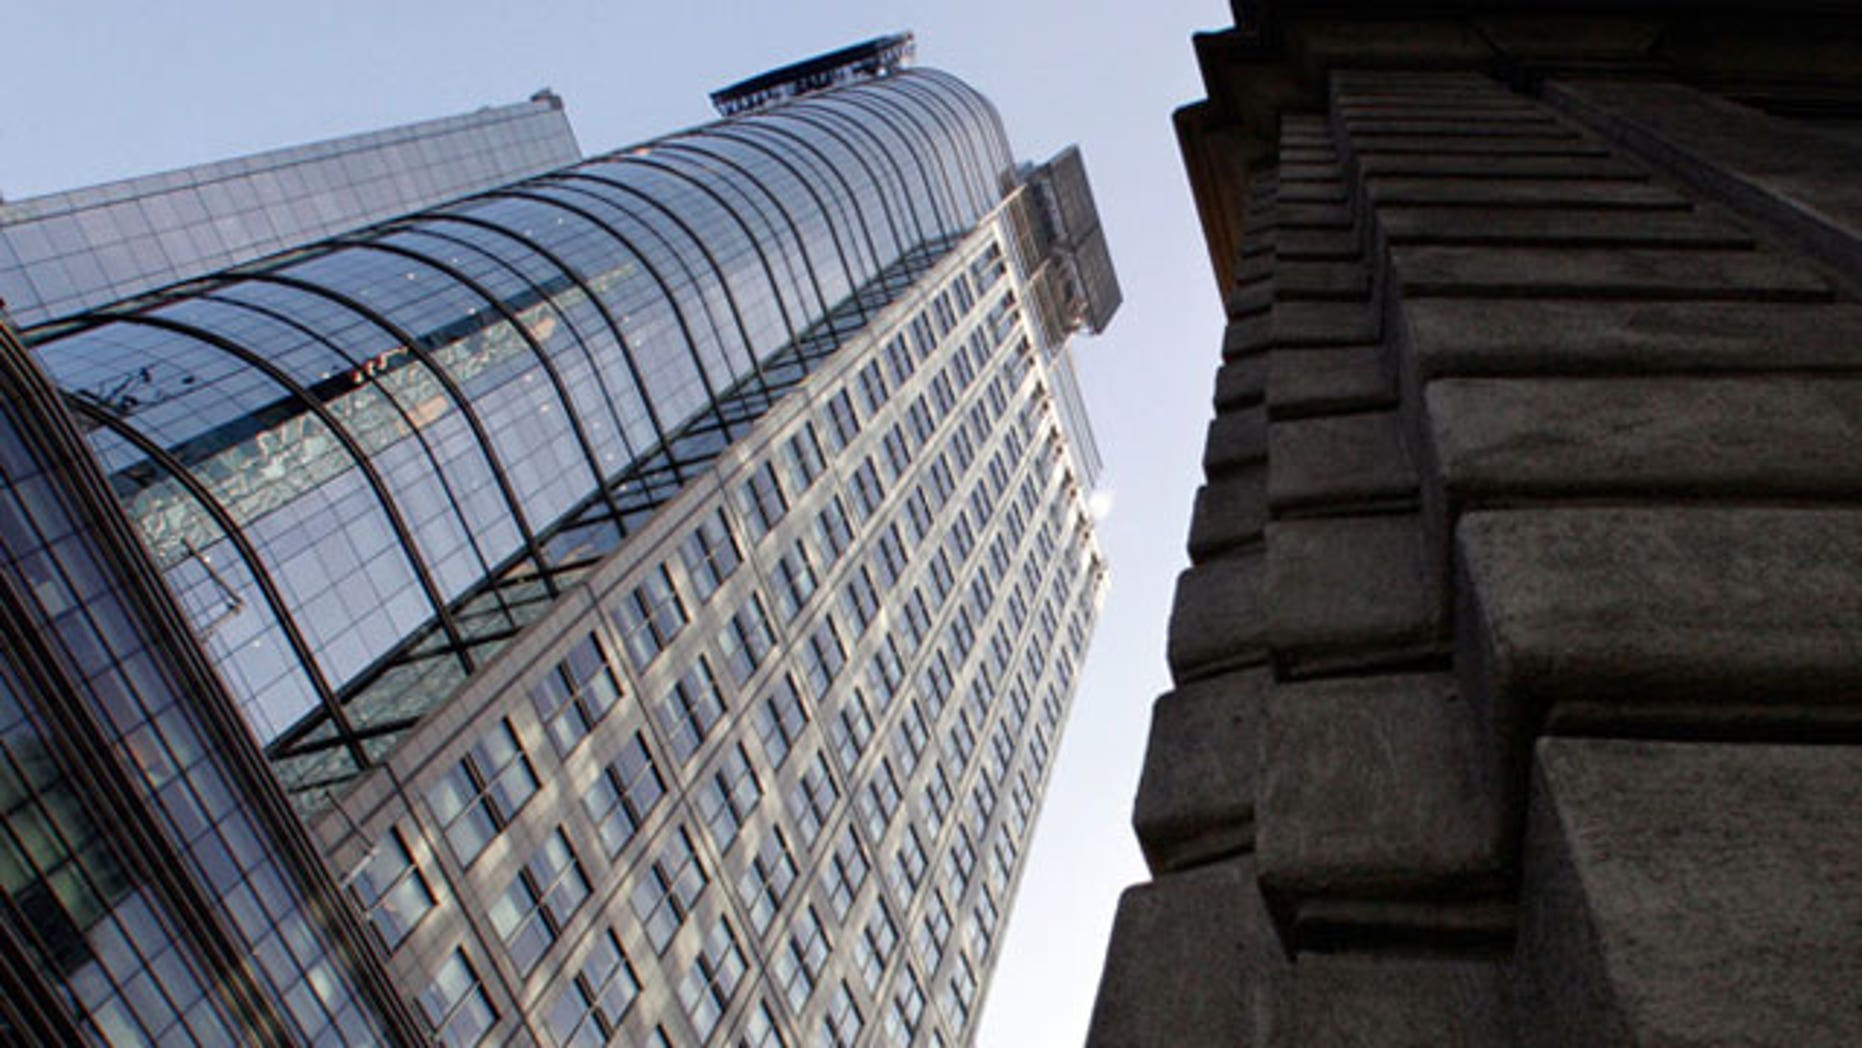 The Conde Nast Building in New York City